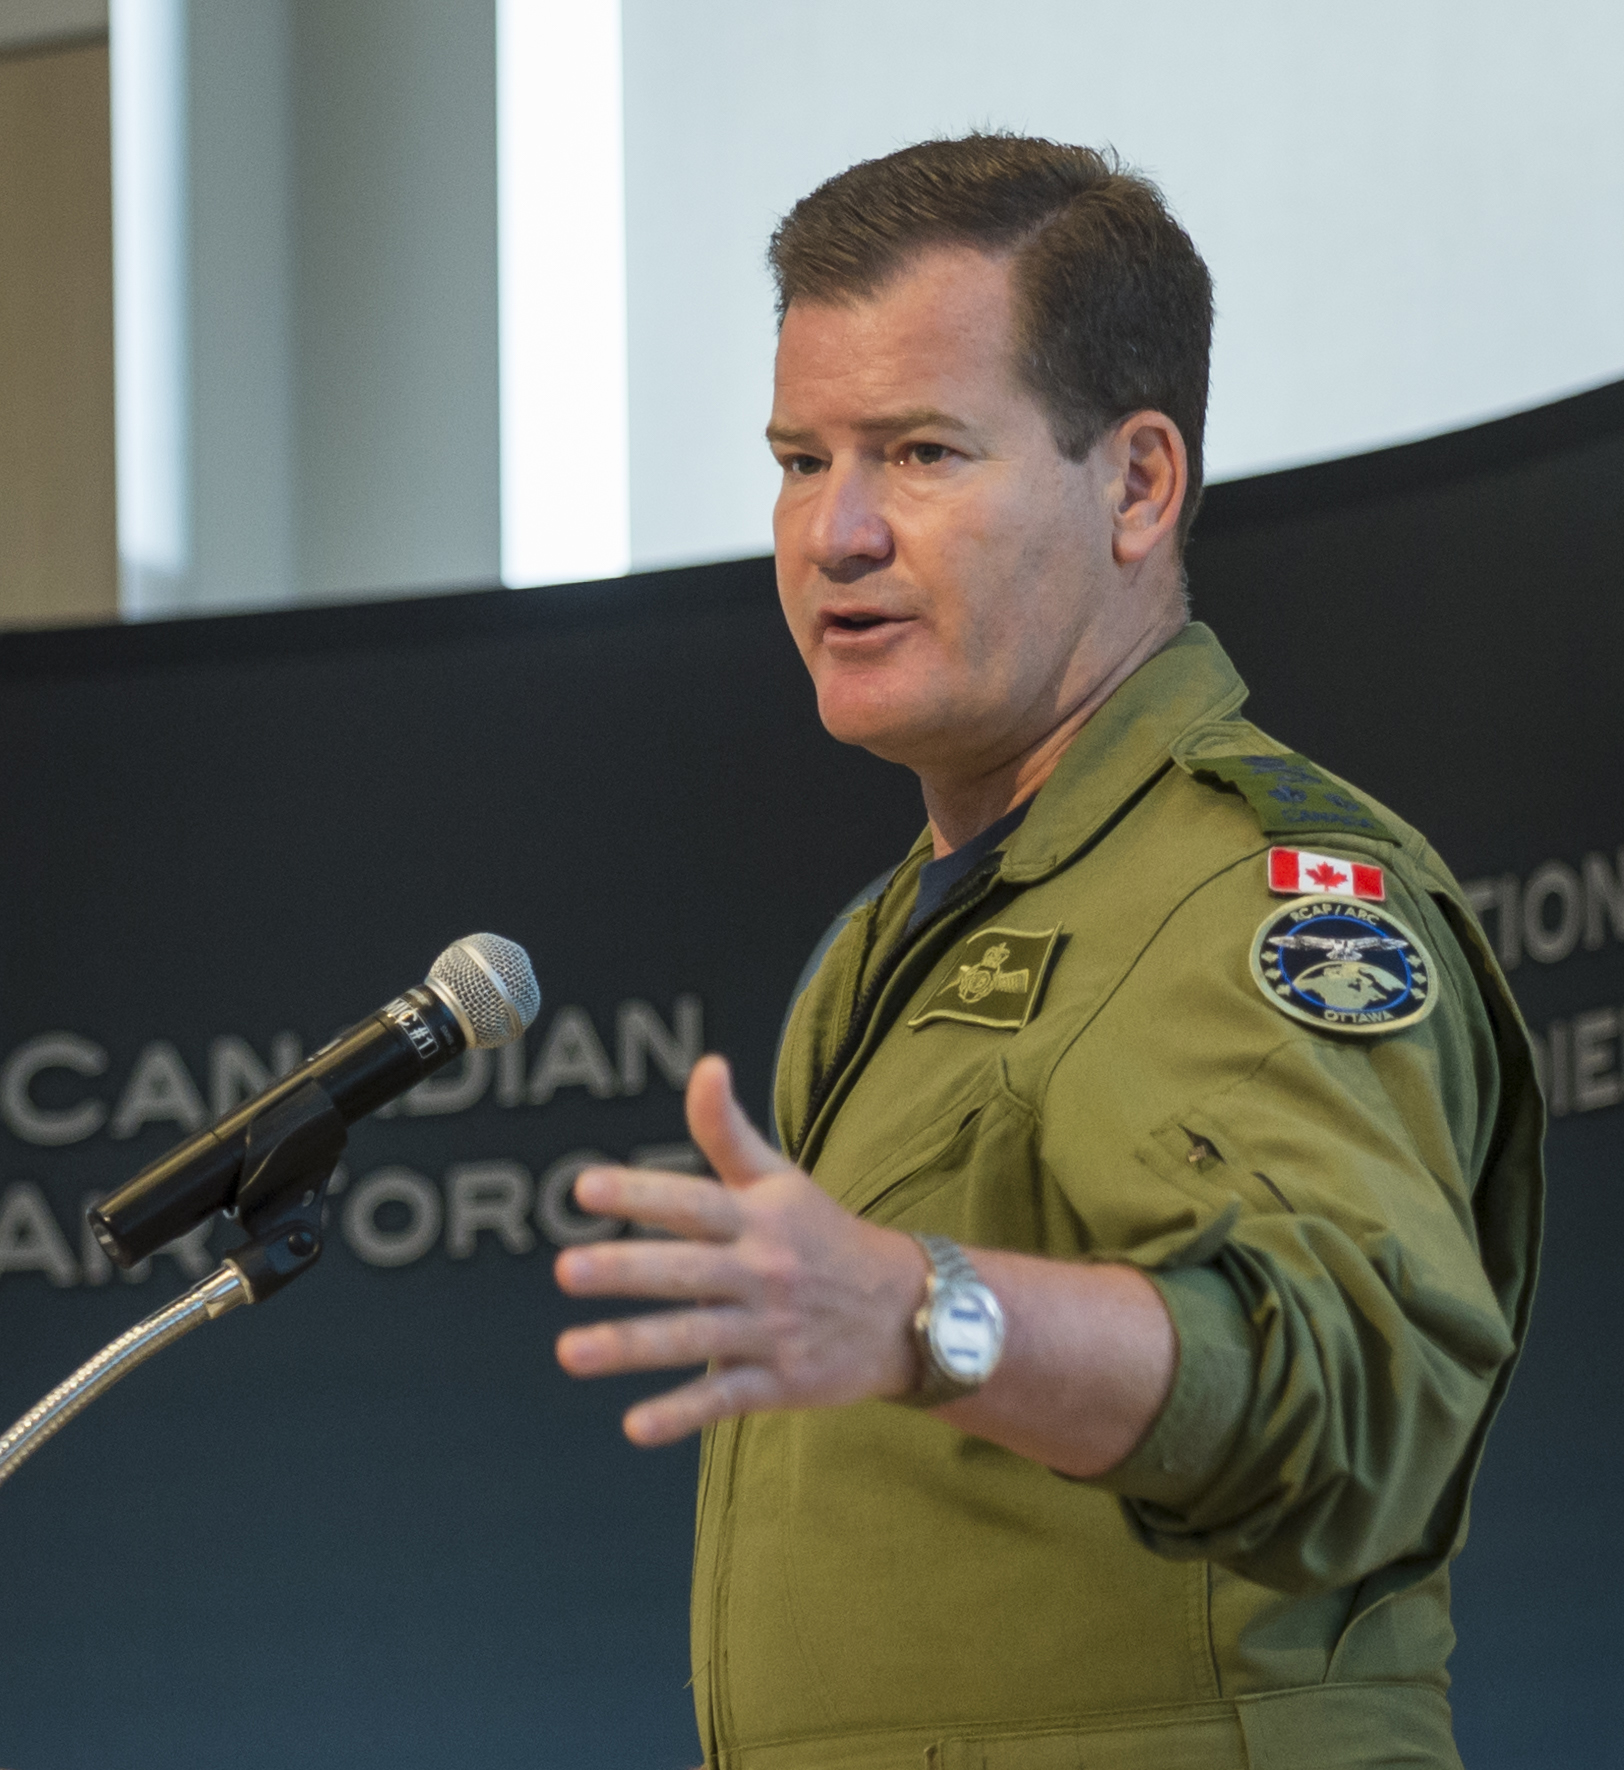 A man wearing an olive green flight suit speaks from behind a podium while gesturing with his left hand.